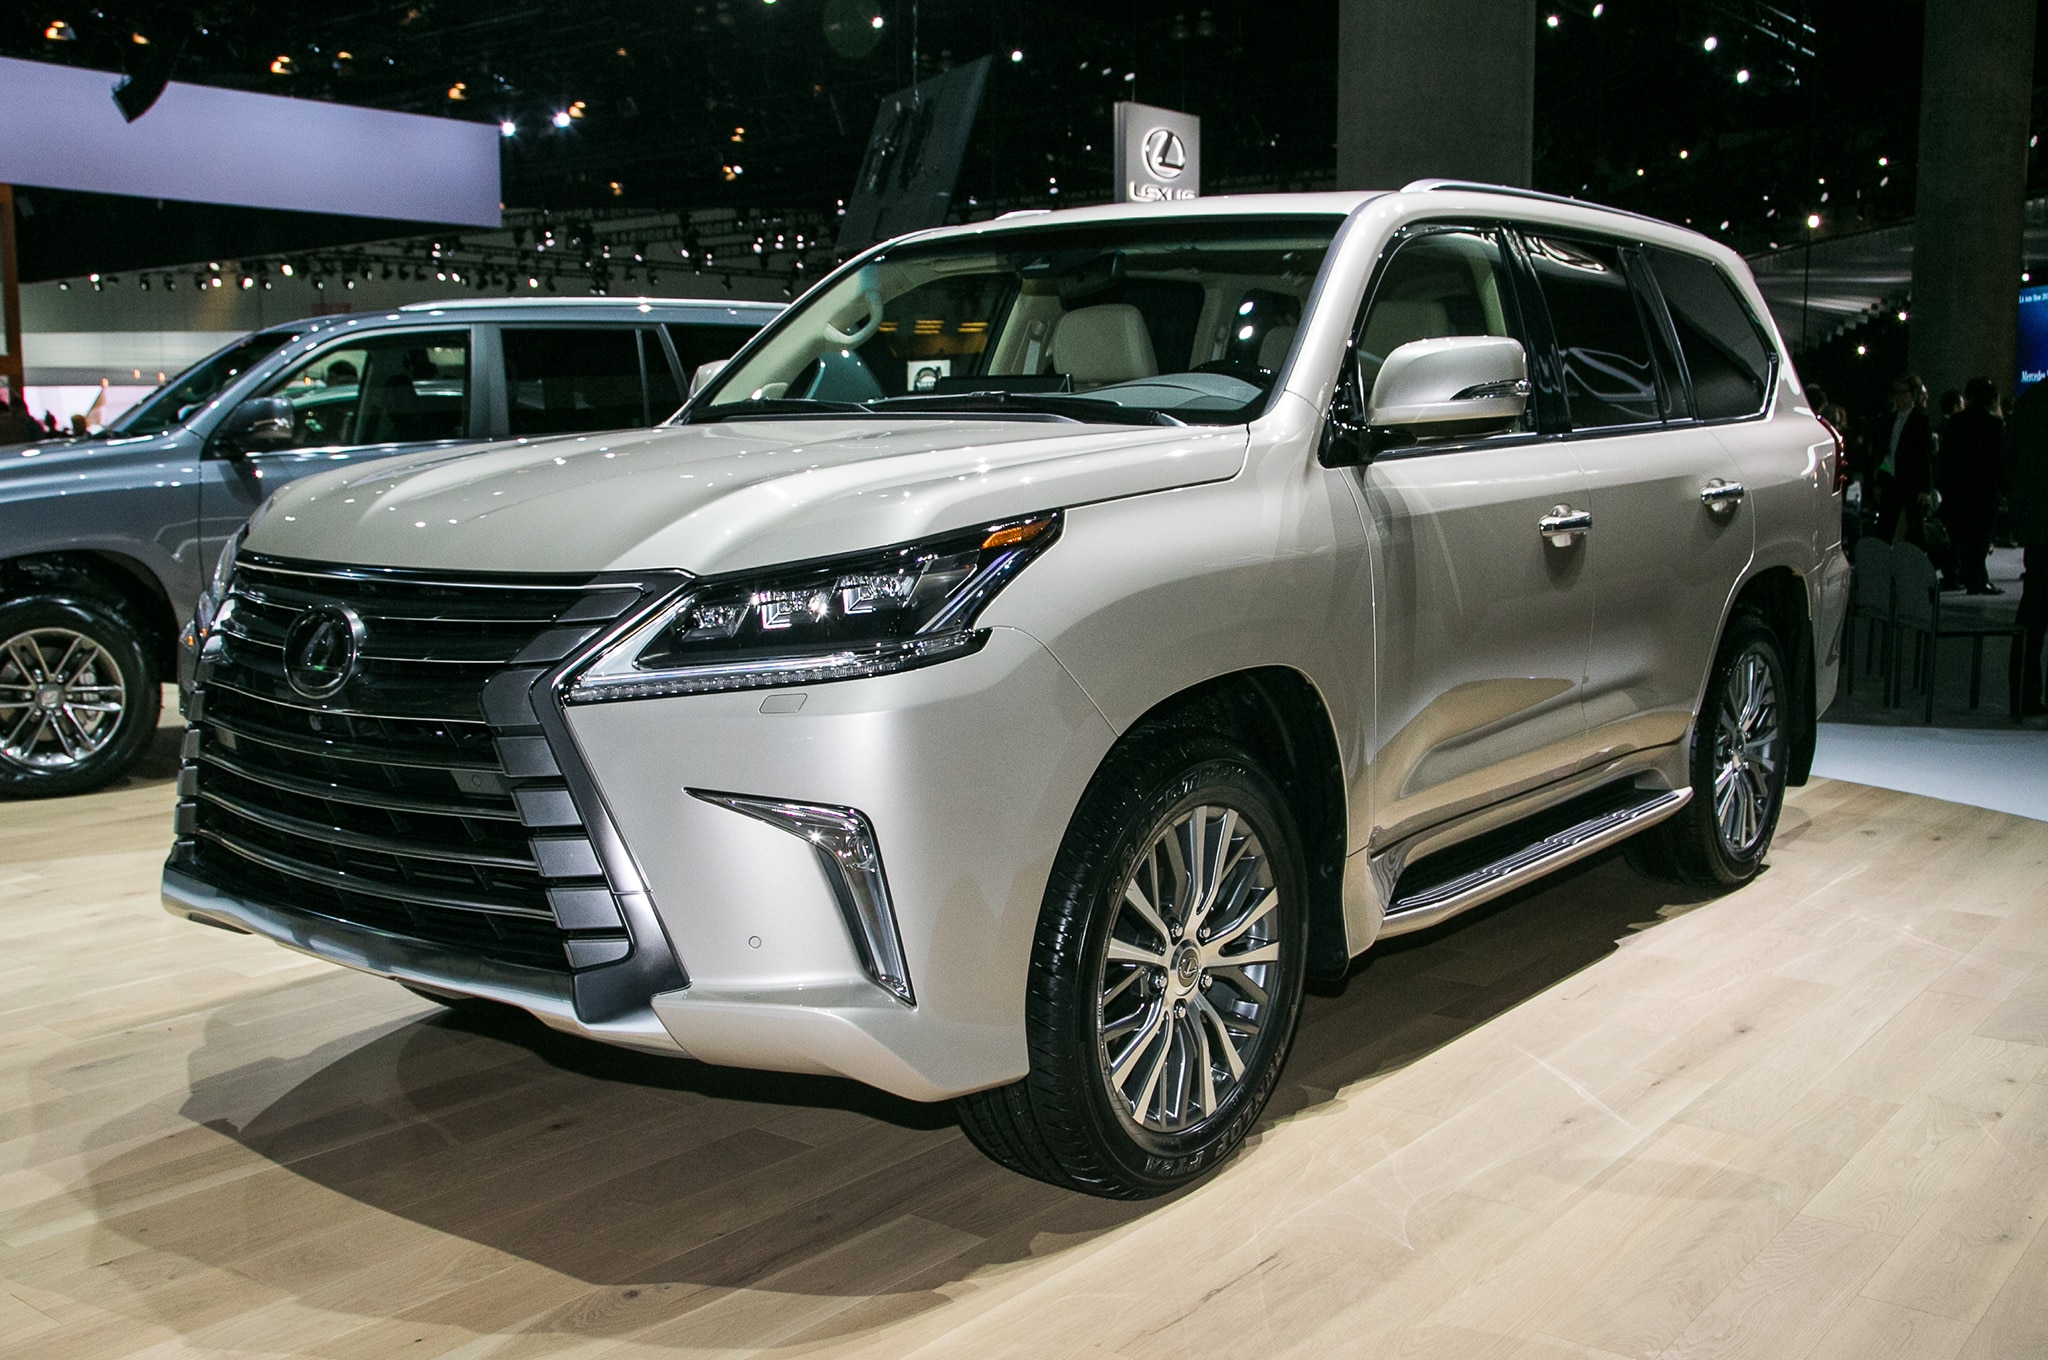 2018 Lexus LX 570 Front Three Quarter